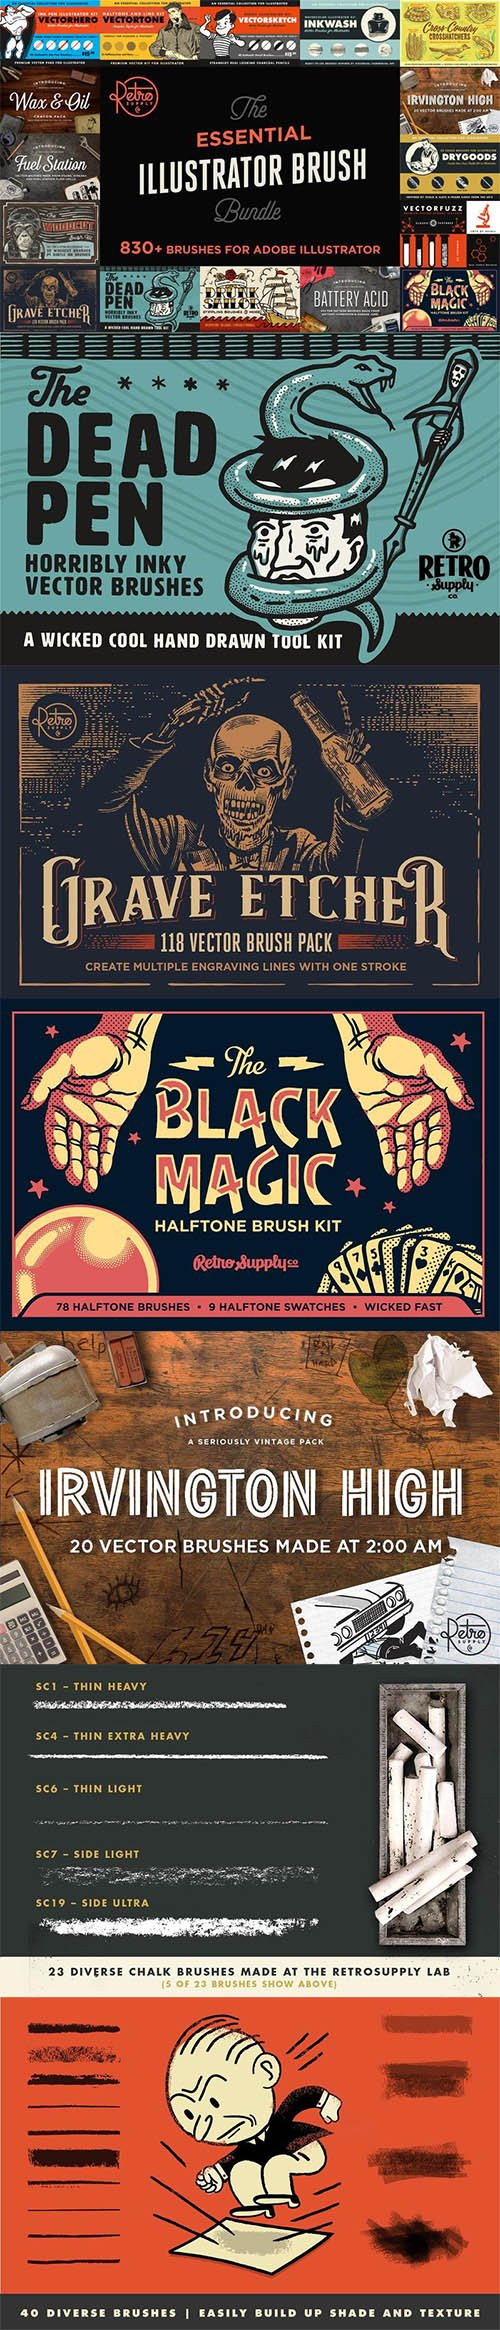 THE ESSENTIAL ILLUSTRATOR BRUSH BUNDLE